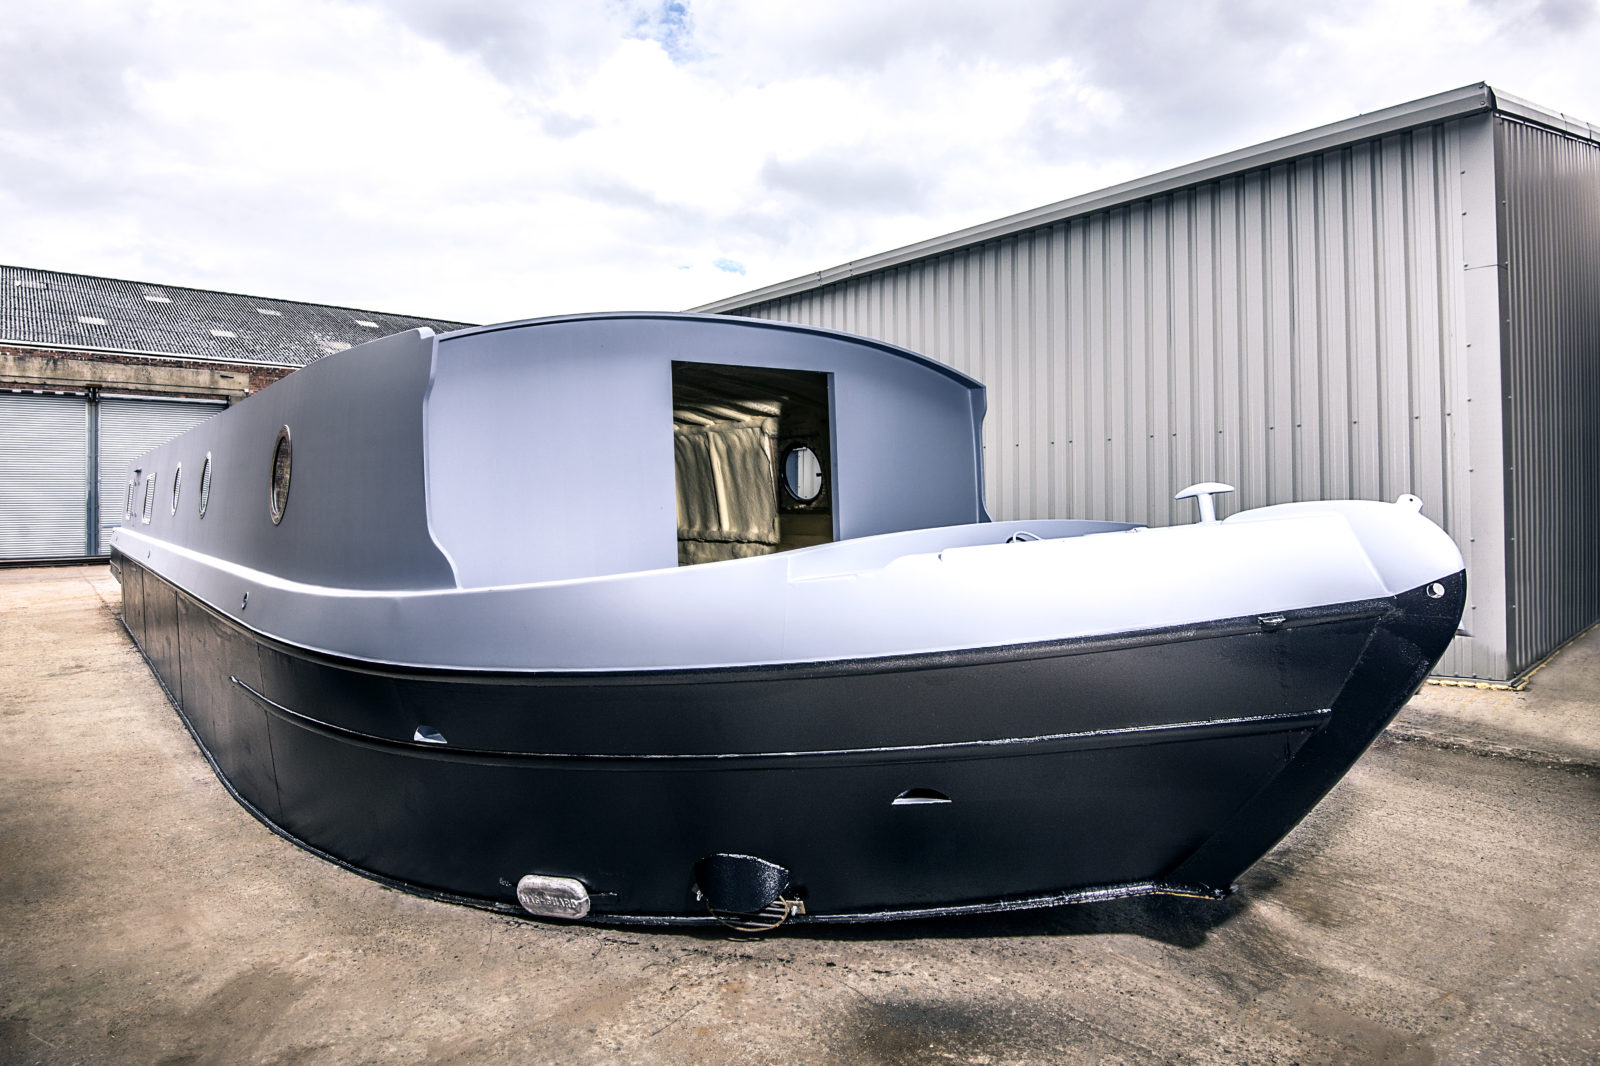 Only uk for narrowboats sale Boat Sales